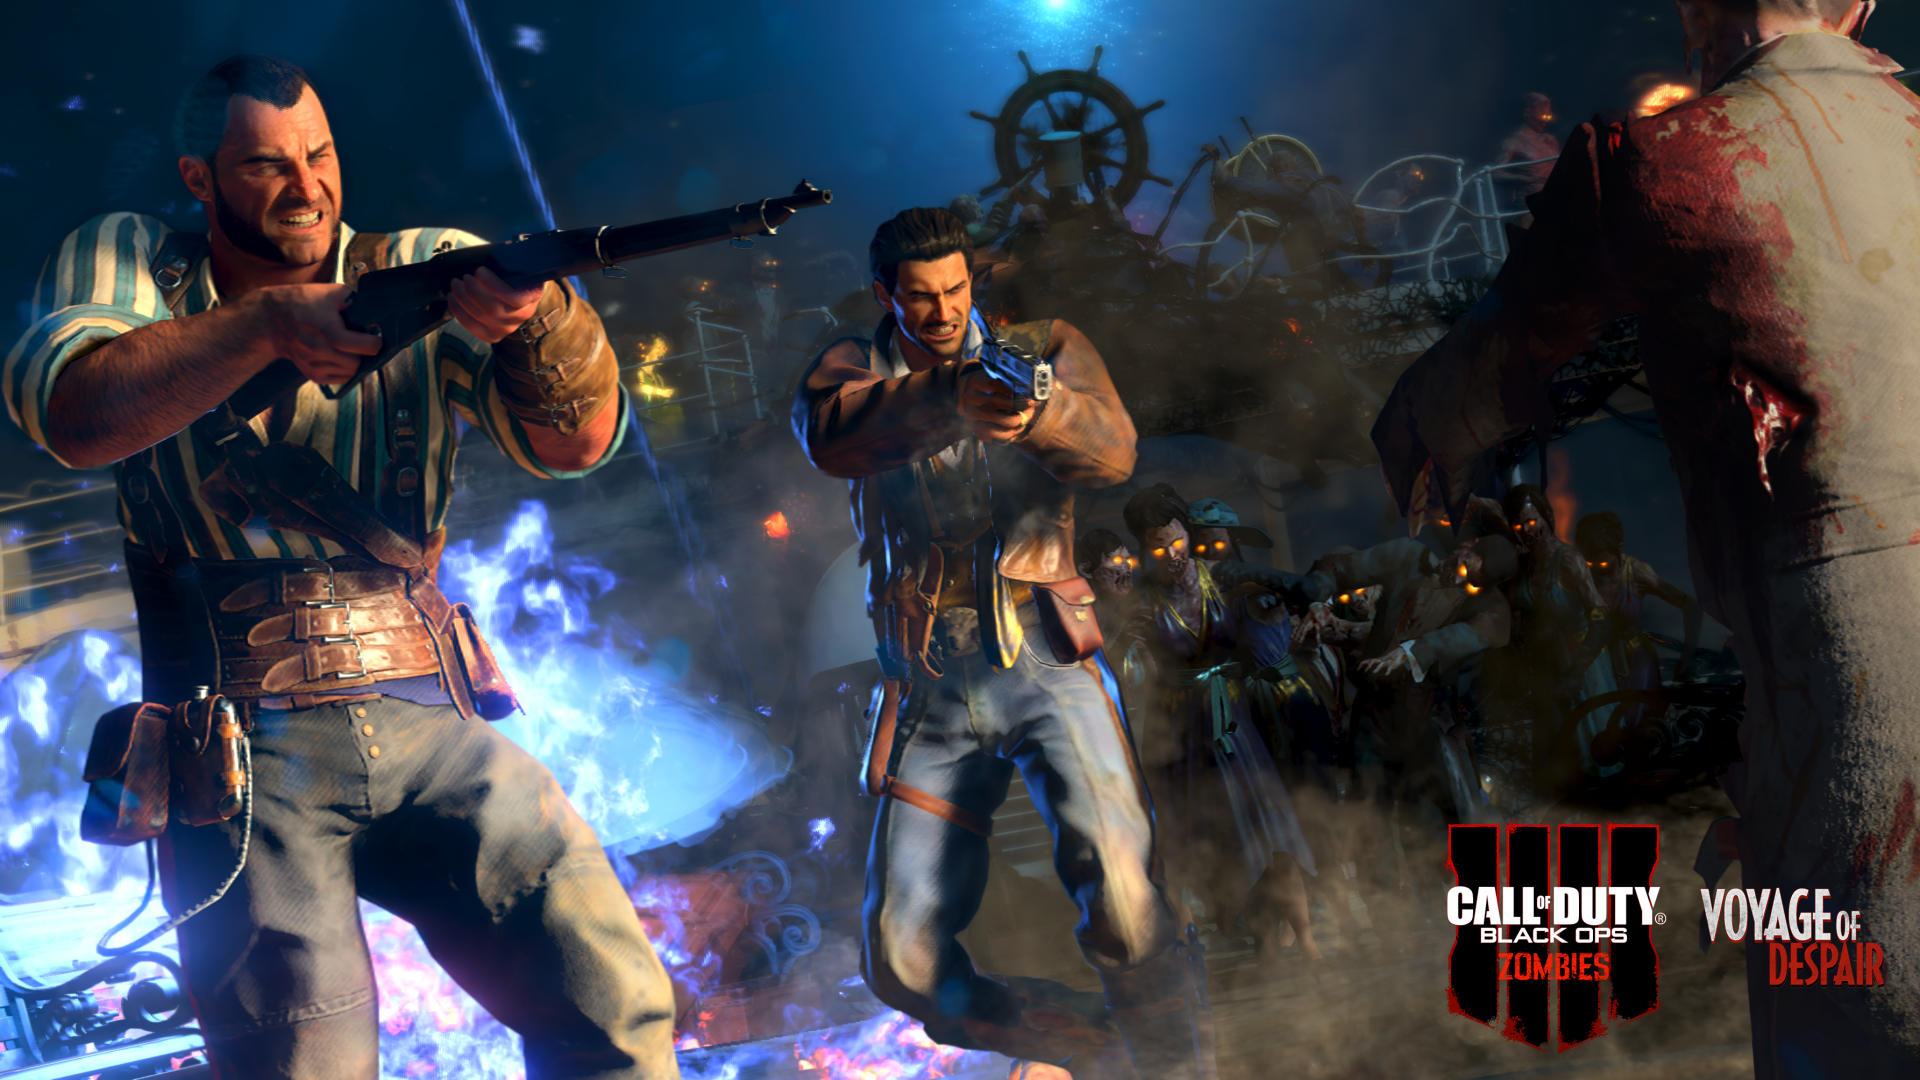 Call Of Duty Black Ops 4 Zombies Shooting Desktop Wallpapers